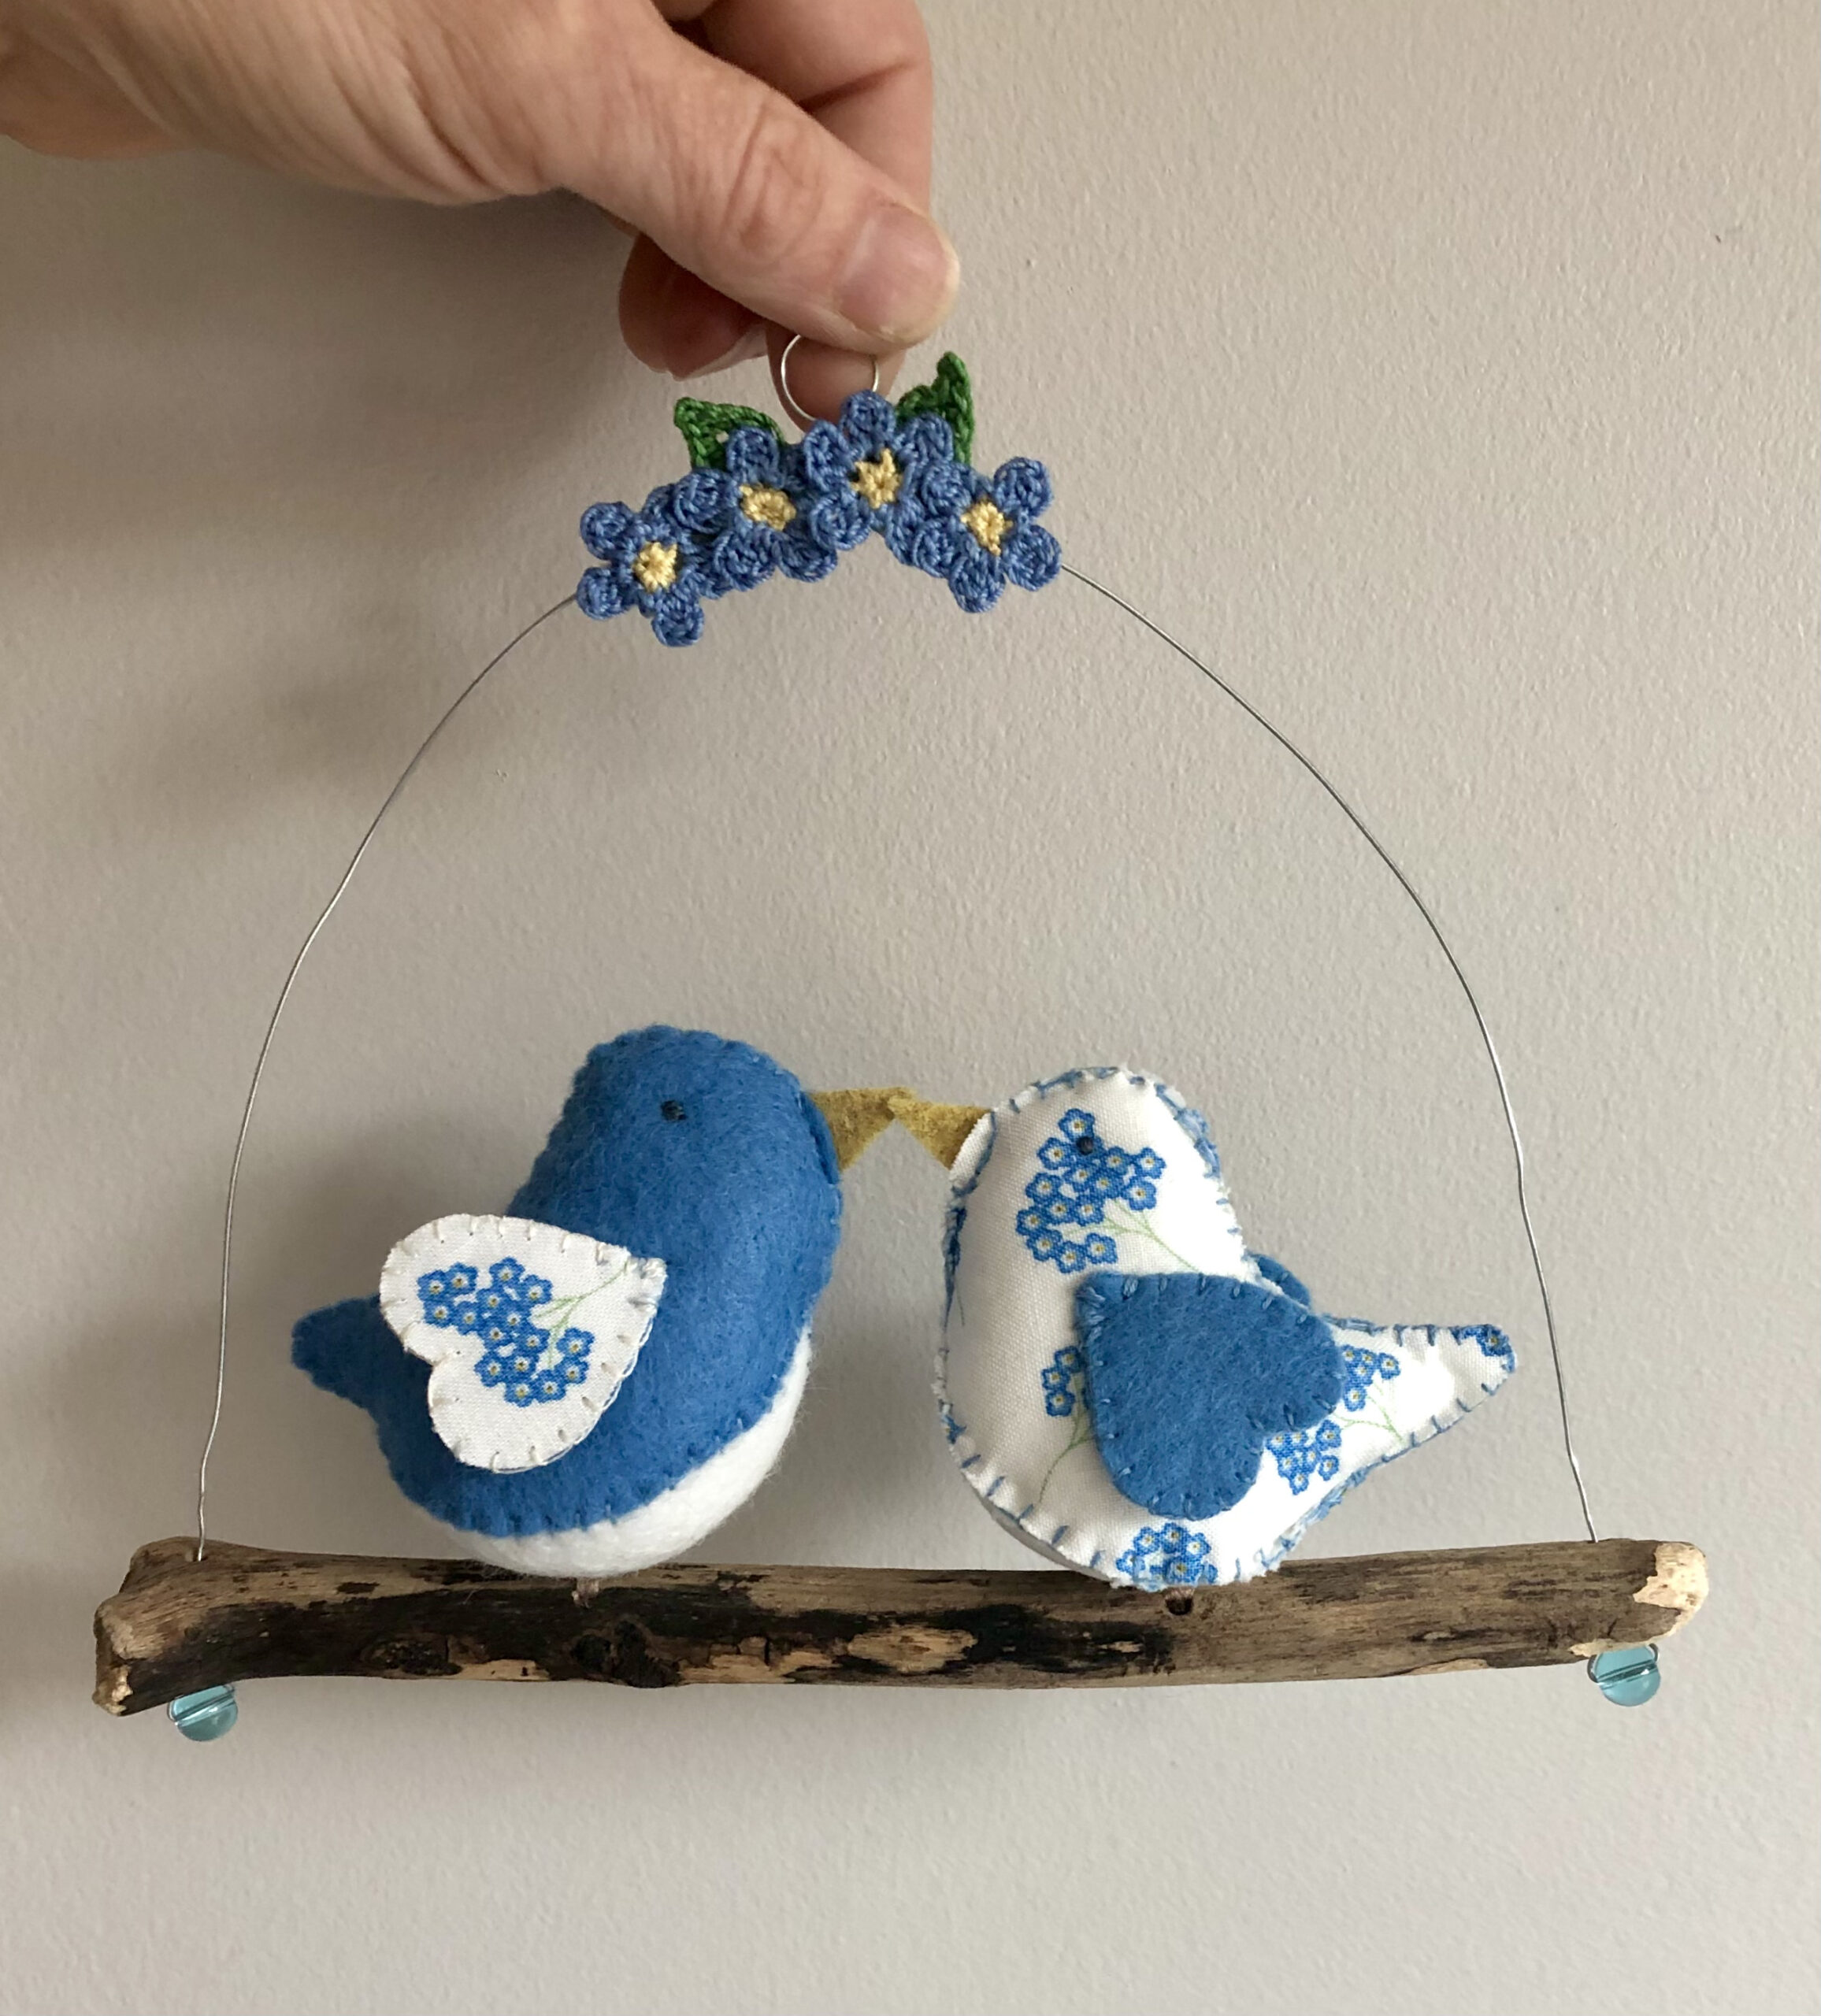 Forget-Me-Not birds.